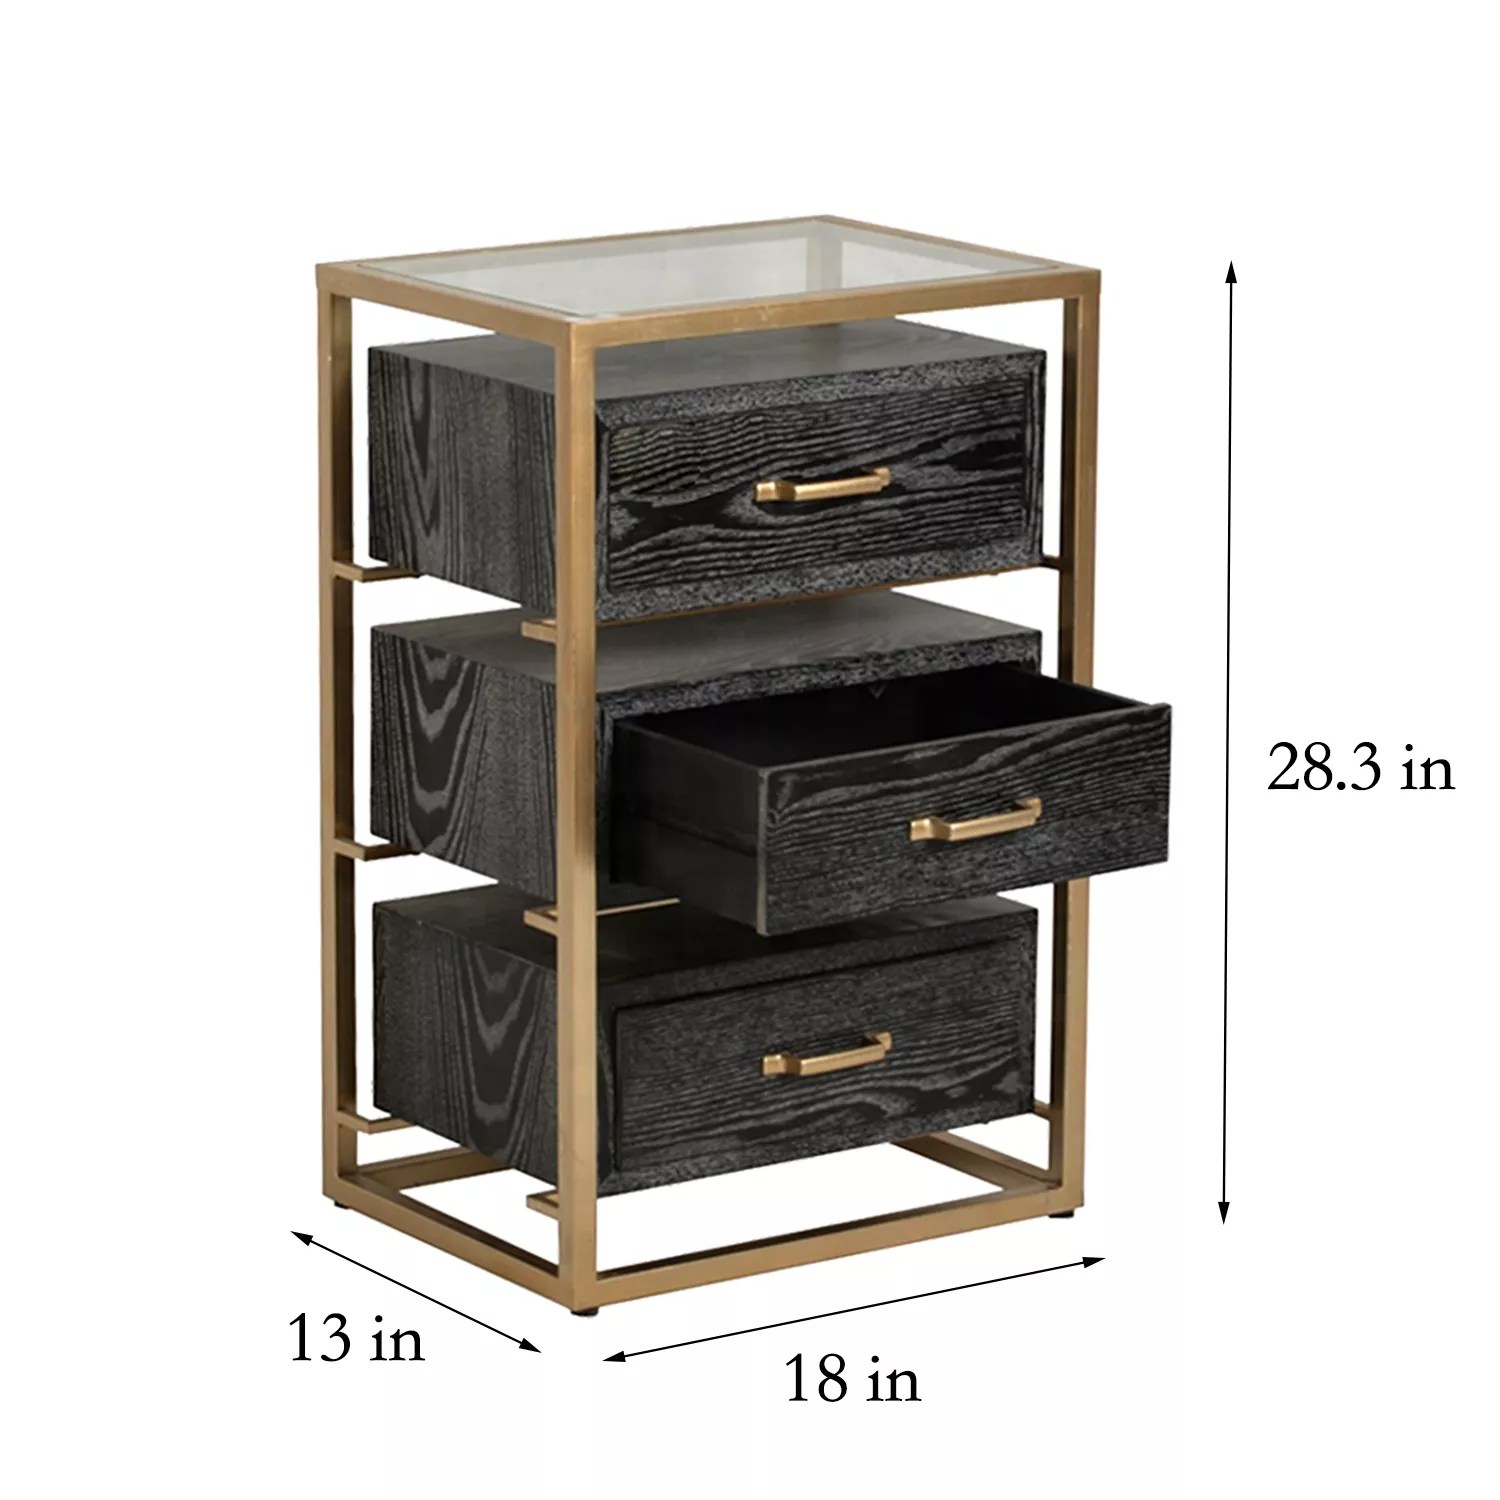 mayco bedroom furniture side table with 3 drawers modern black glass top nightstand buy glass nightstand modern nightstand bedside nightstand with 3